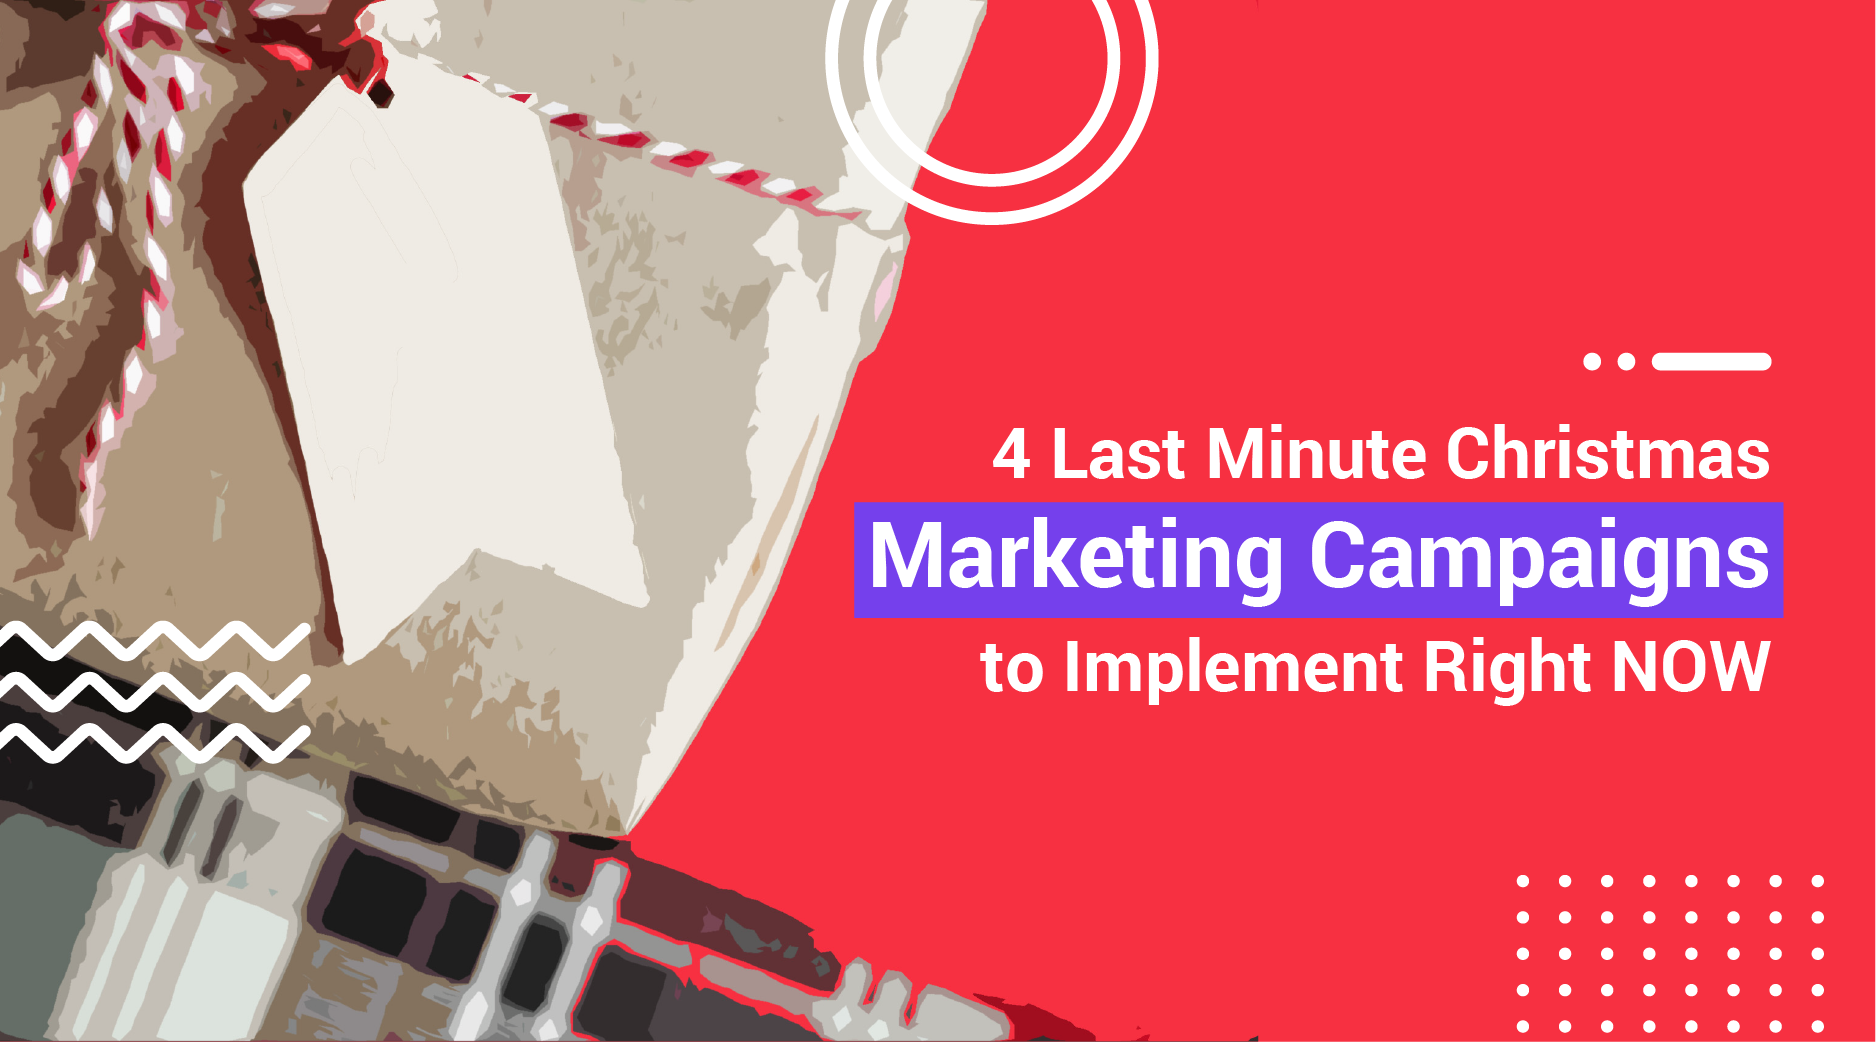 4 Last-Minute Christmas Marketing Campaigns to Implement Right Now